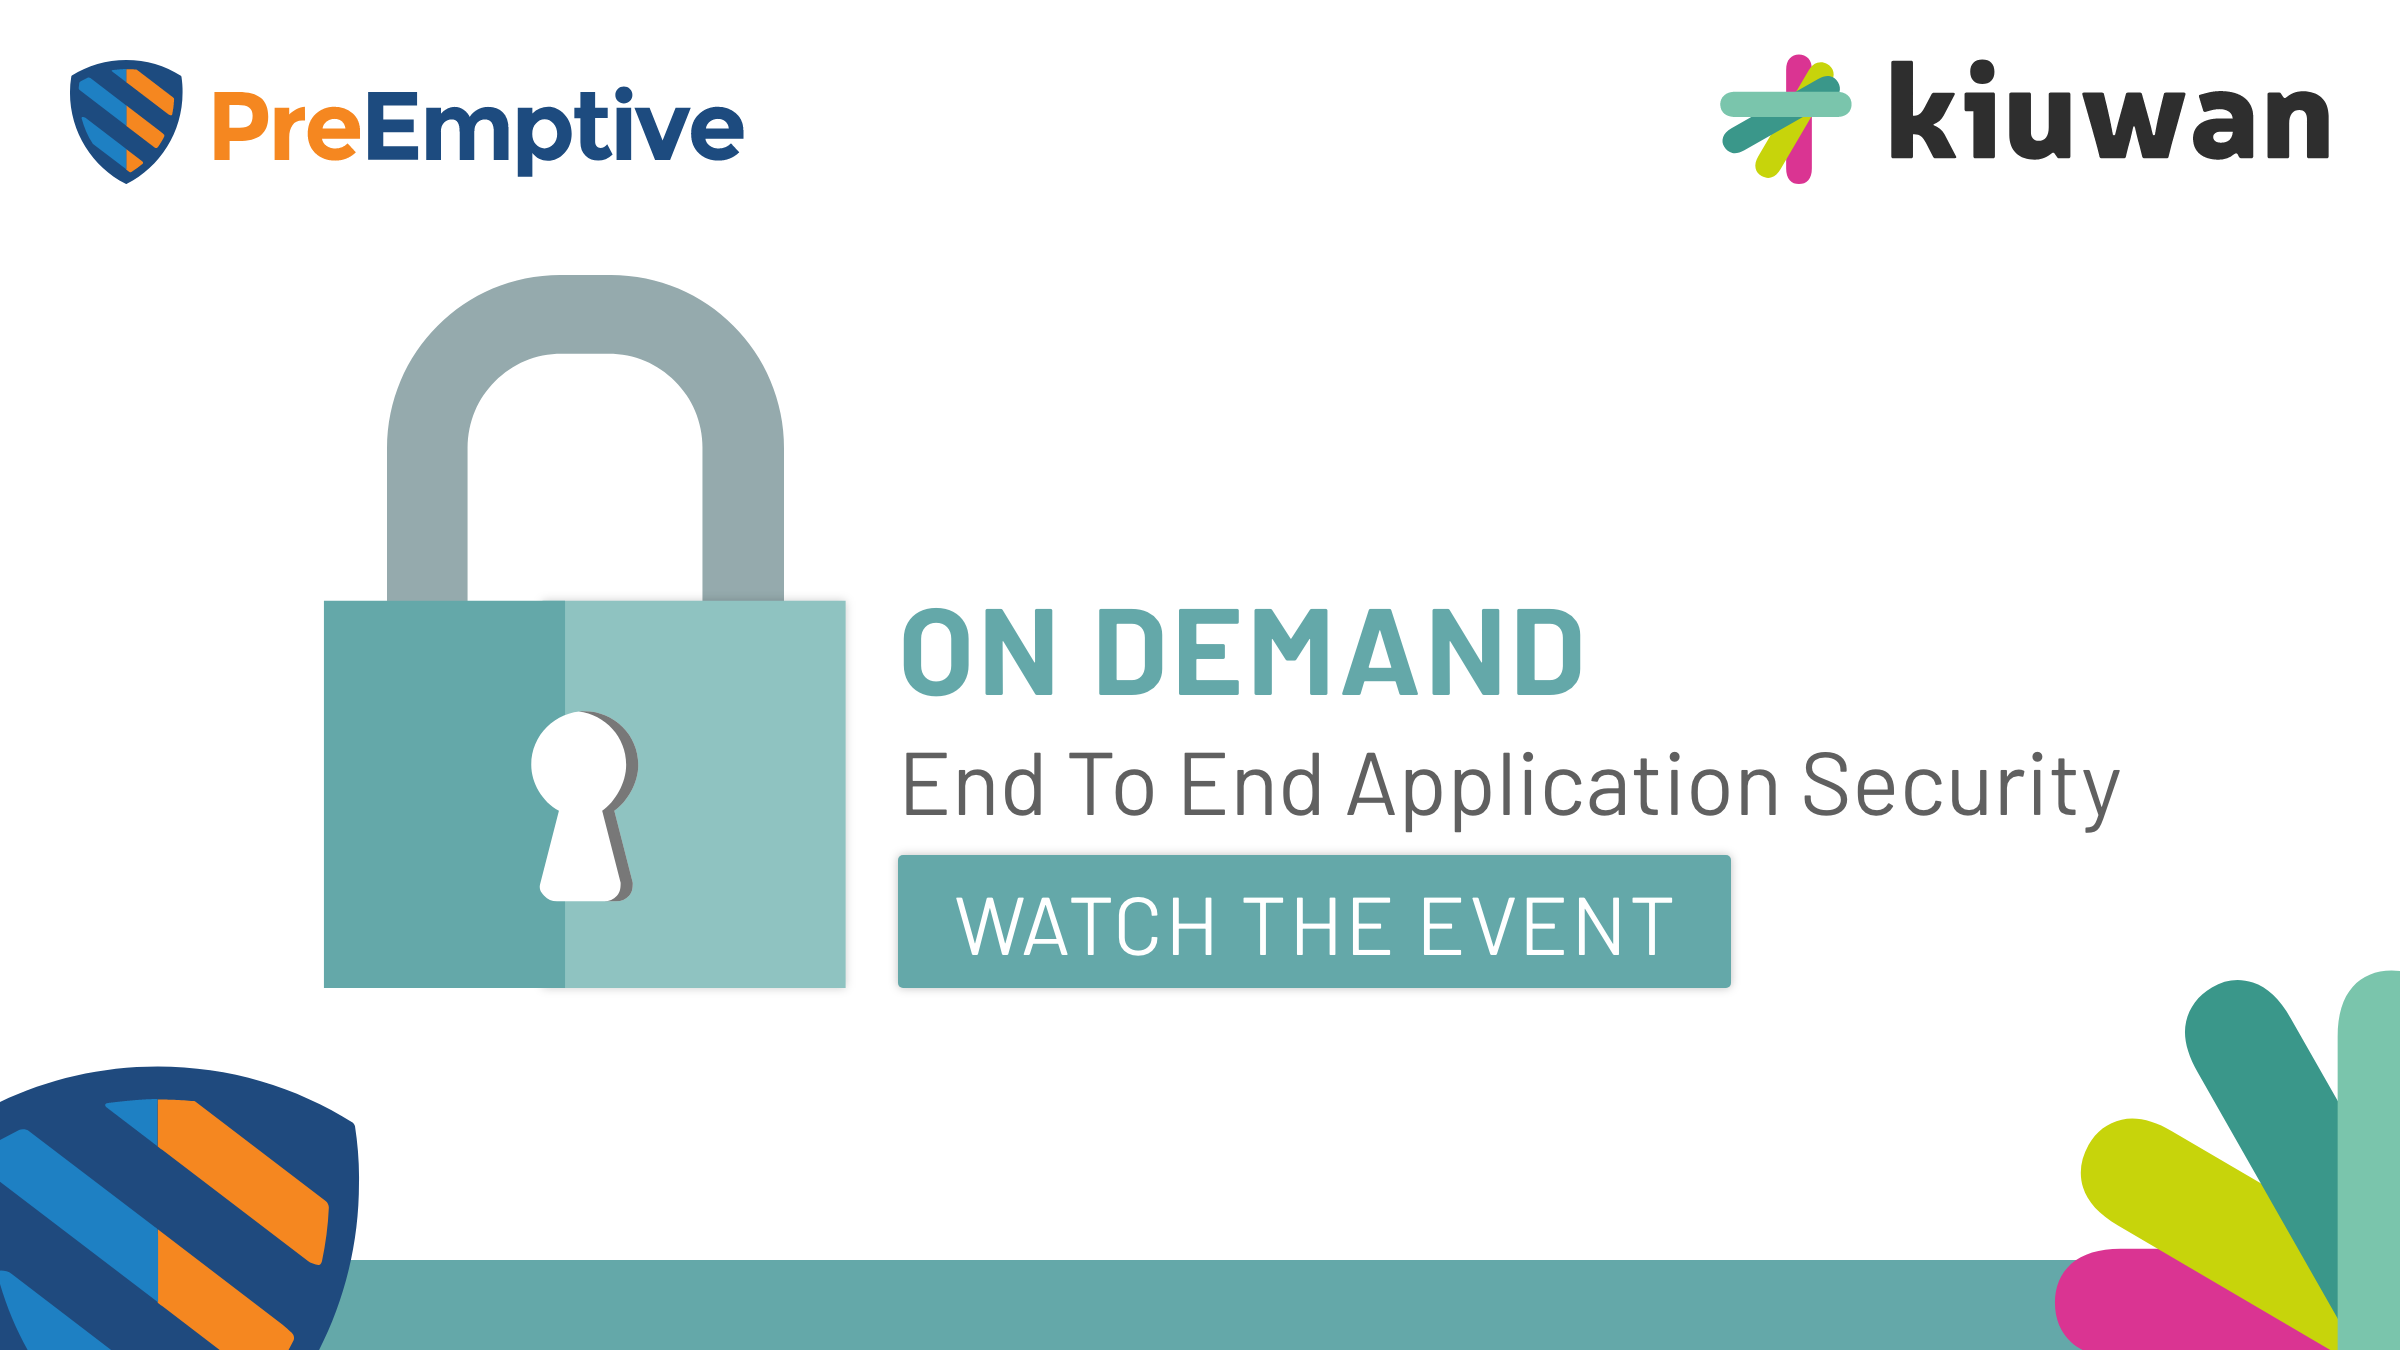 End To End Application Security